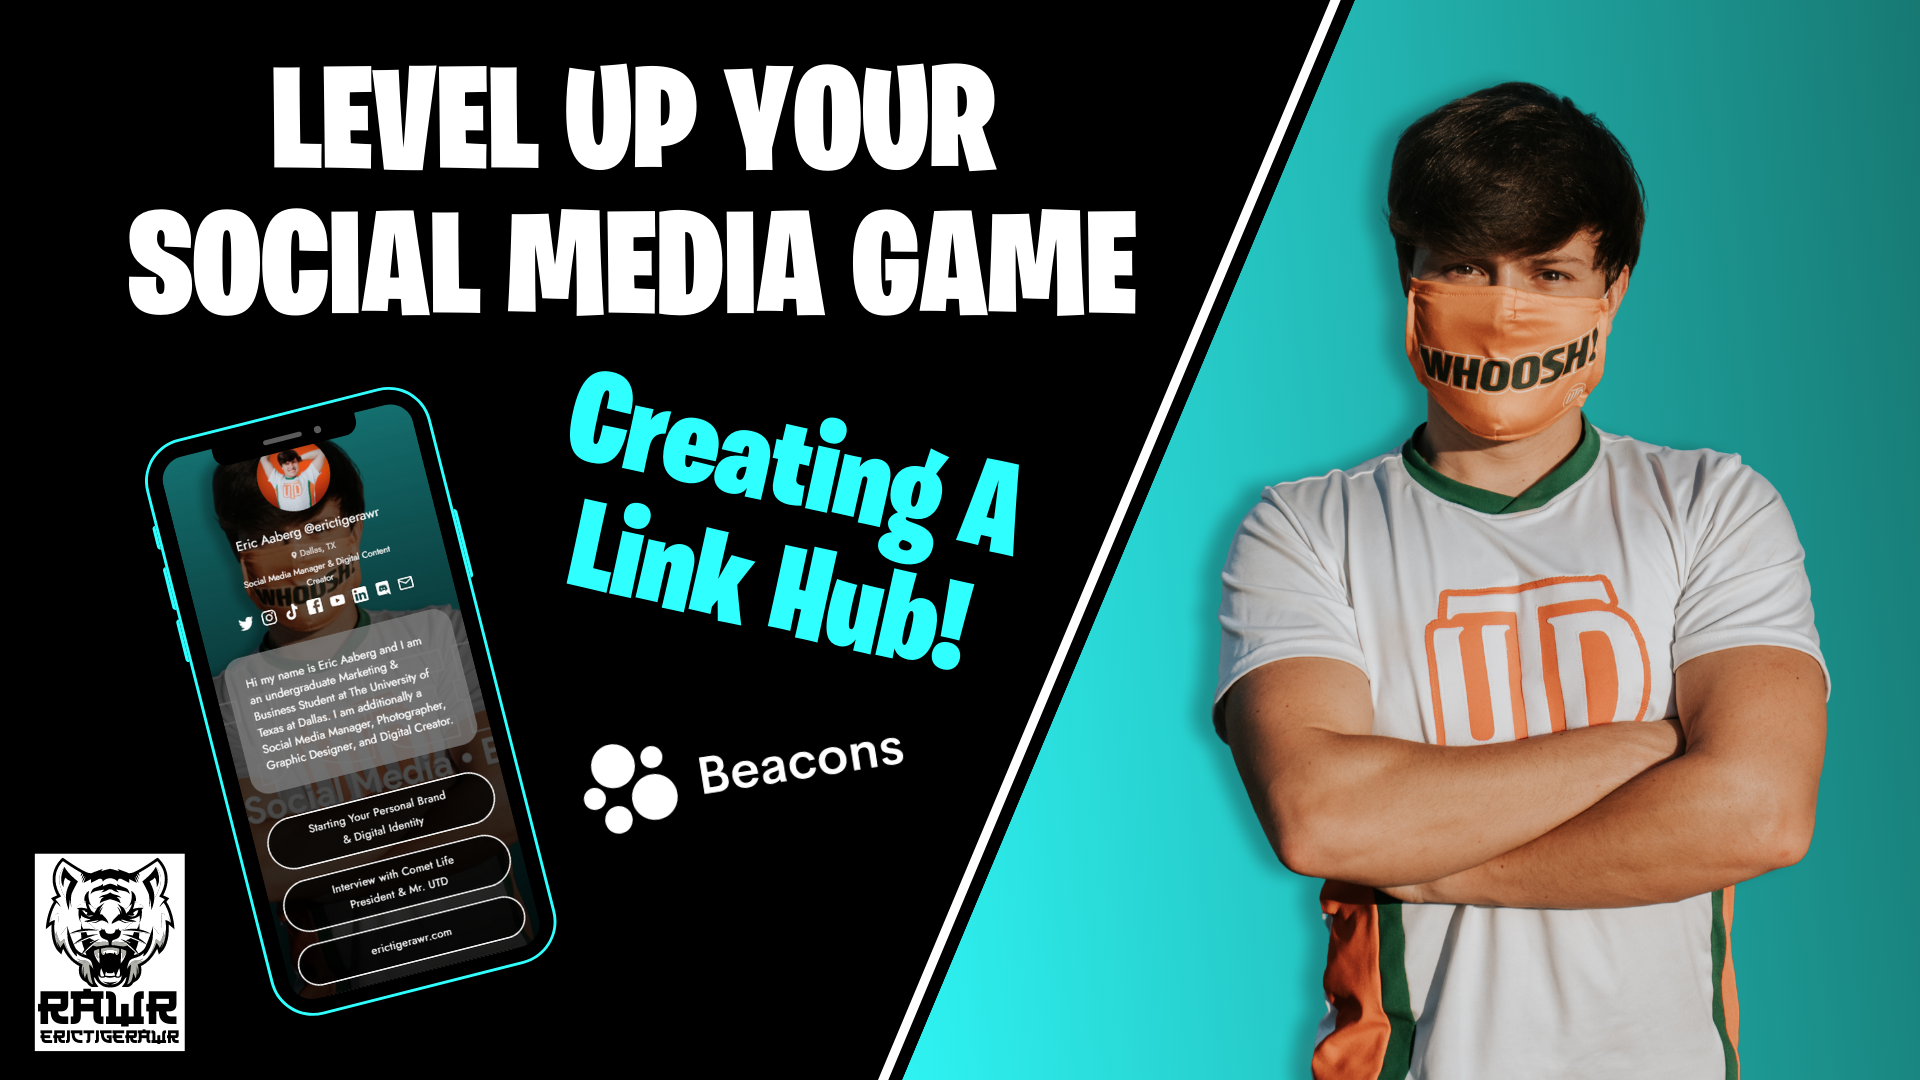 Level Up Your Social Media Game: Creating a Link Hub